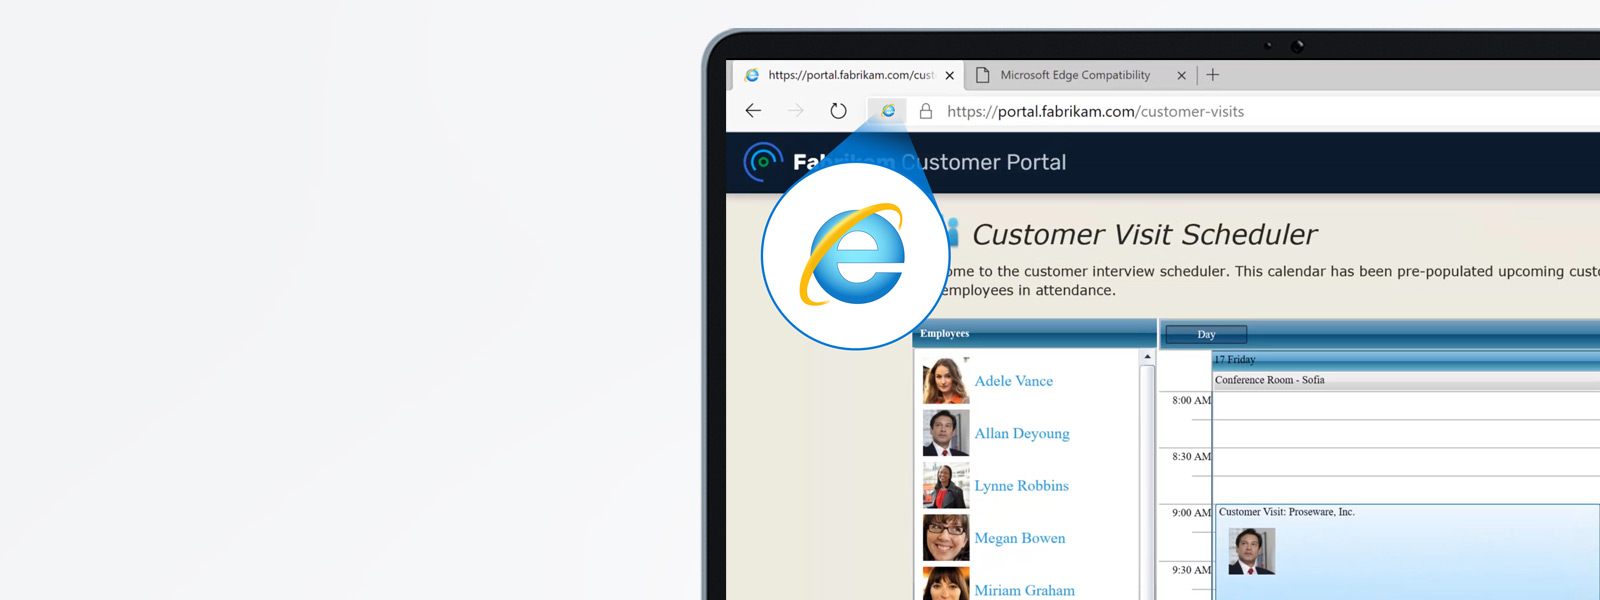 The Microsoft Edge browser with a site open that is using Internet Explorer mode which is indicated by the Internet Explorer icon in the URL address bar.